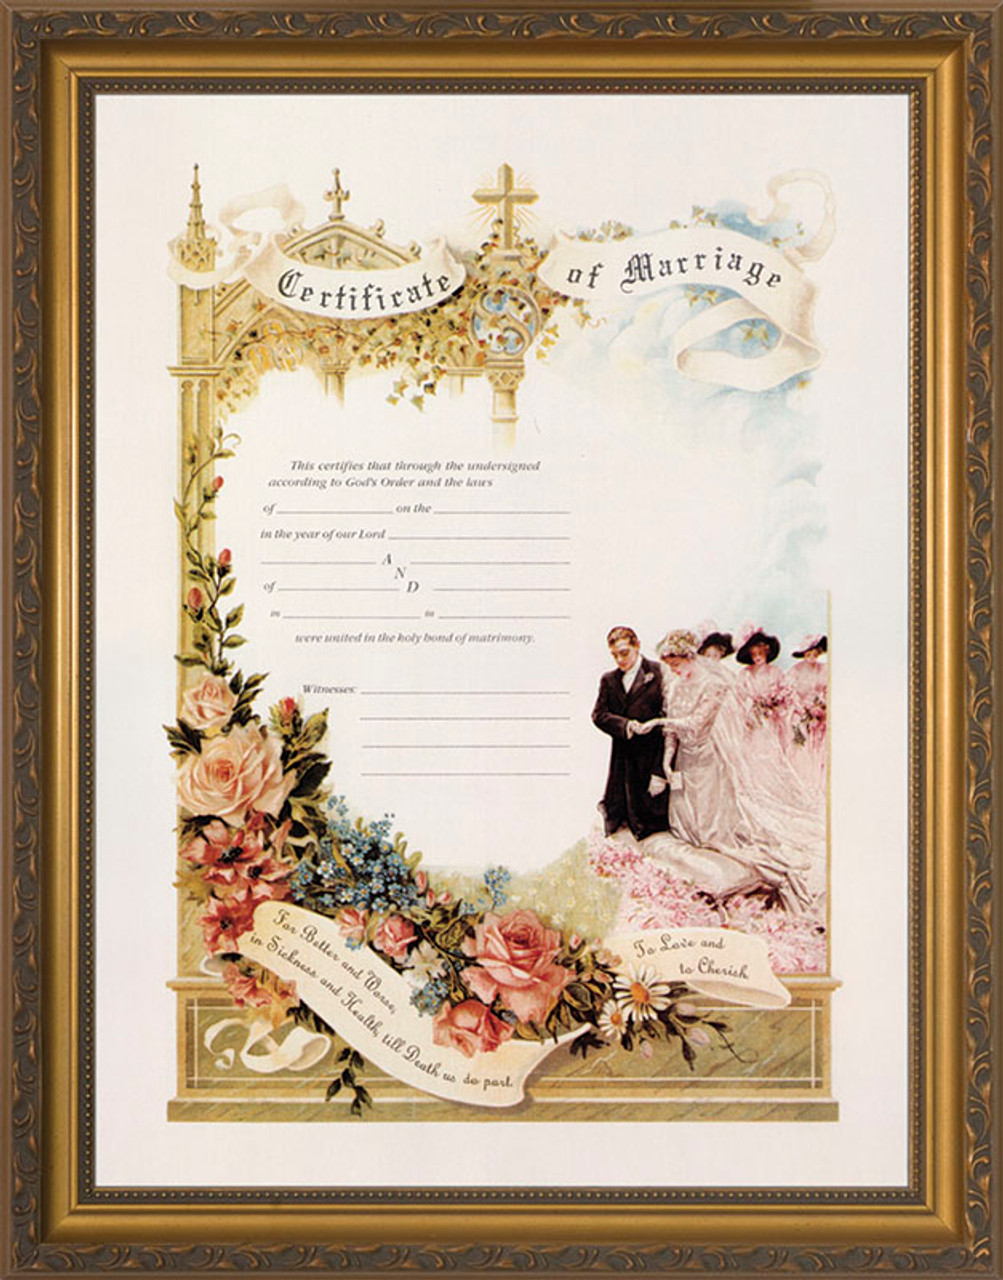 Certificate of Marriage Gold Framed - Catholic to the Max - Online ...